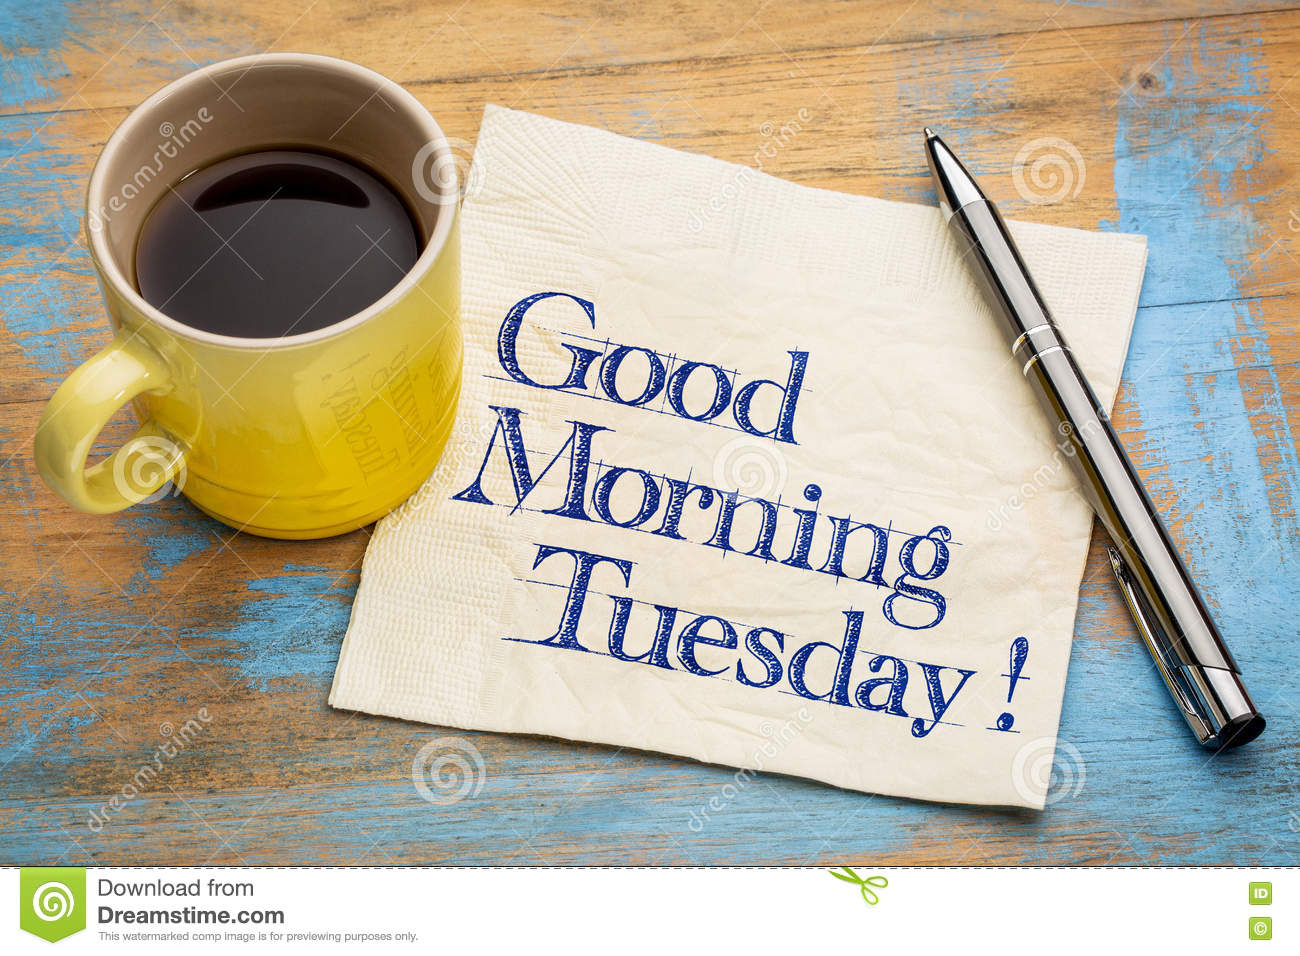 Good Morning Tuesday Stock Image Image Of Greeting Napkin 72957333